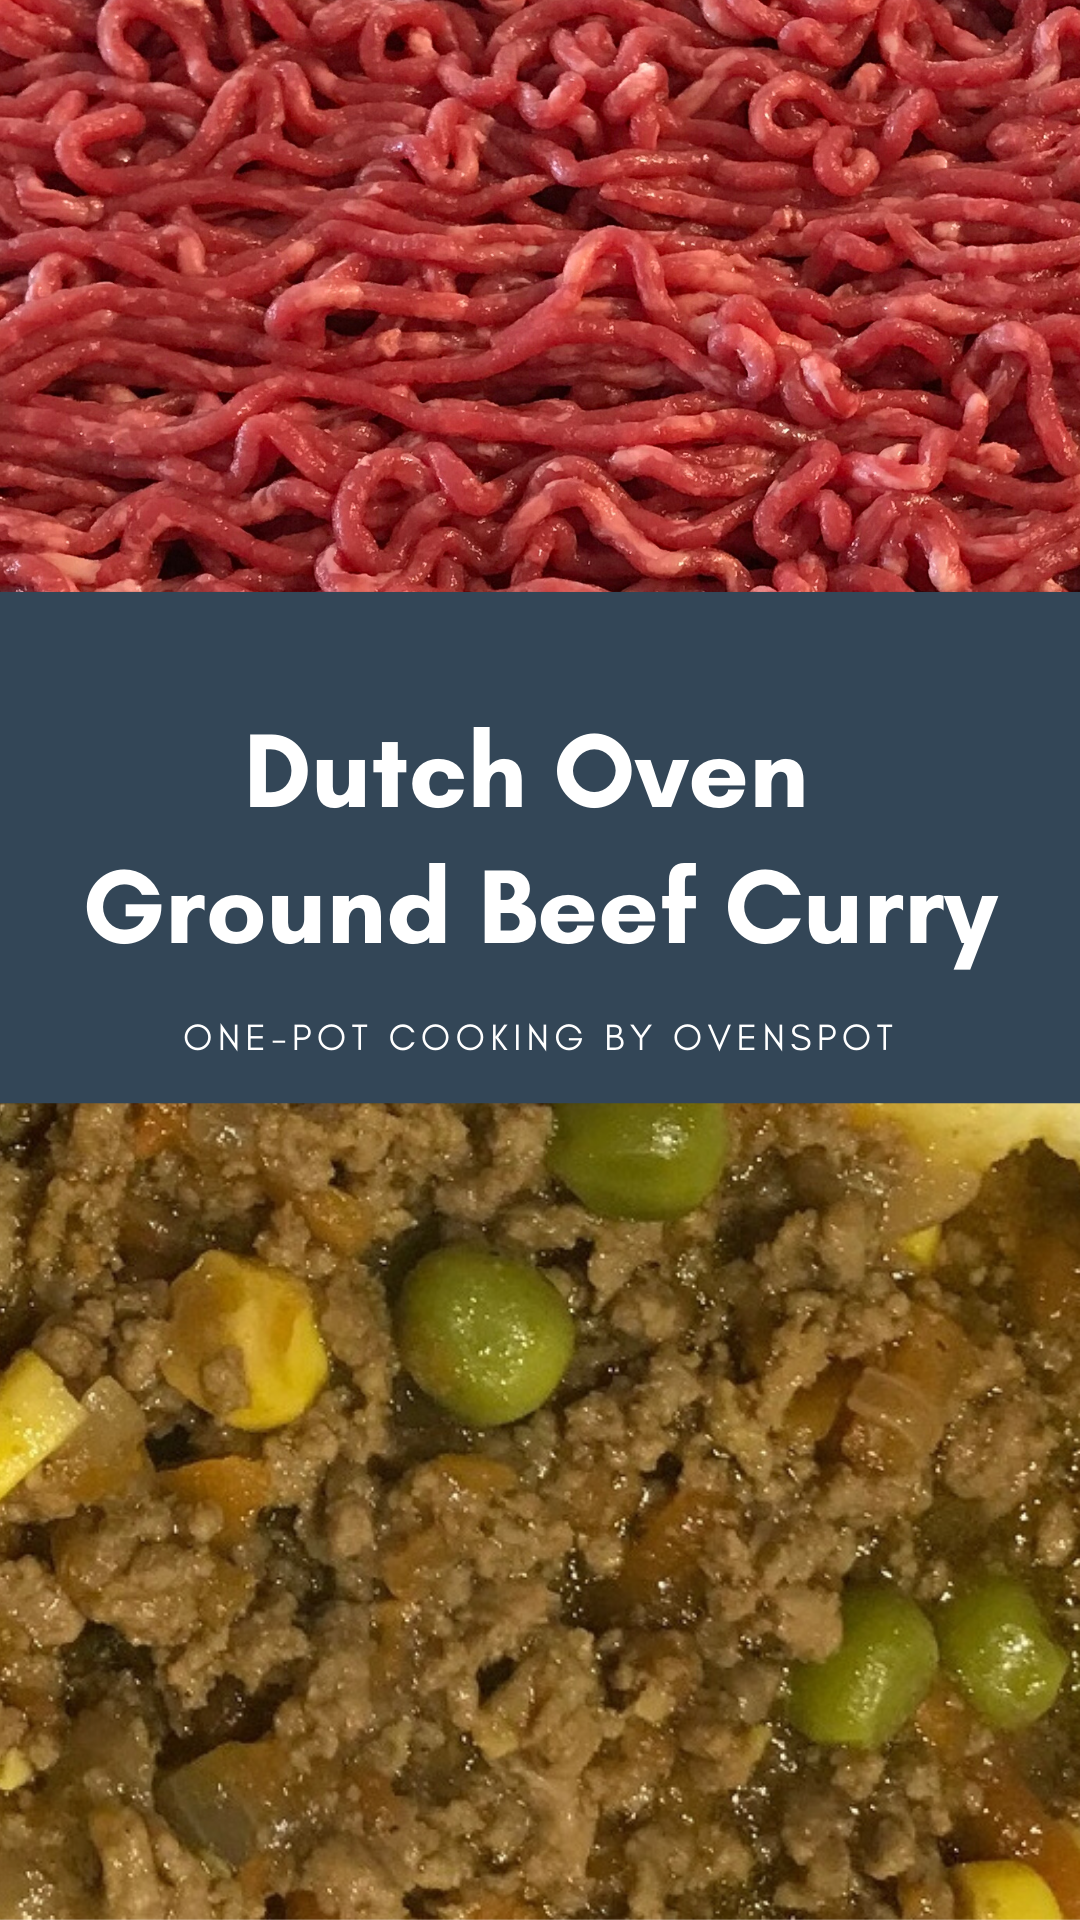 Dutch Oven Ground Beef Curry Ovenspot Recipe In 2020 Beef Curry Ground Beef Beef